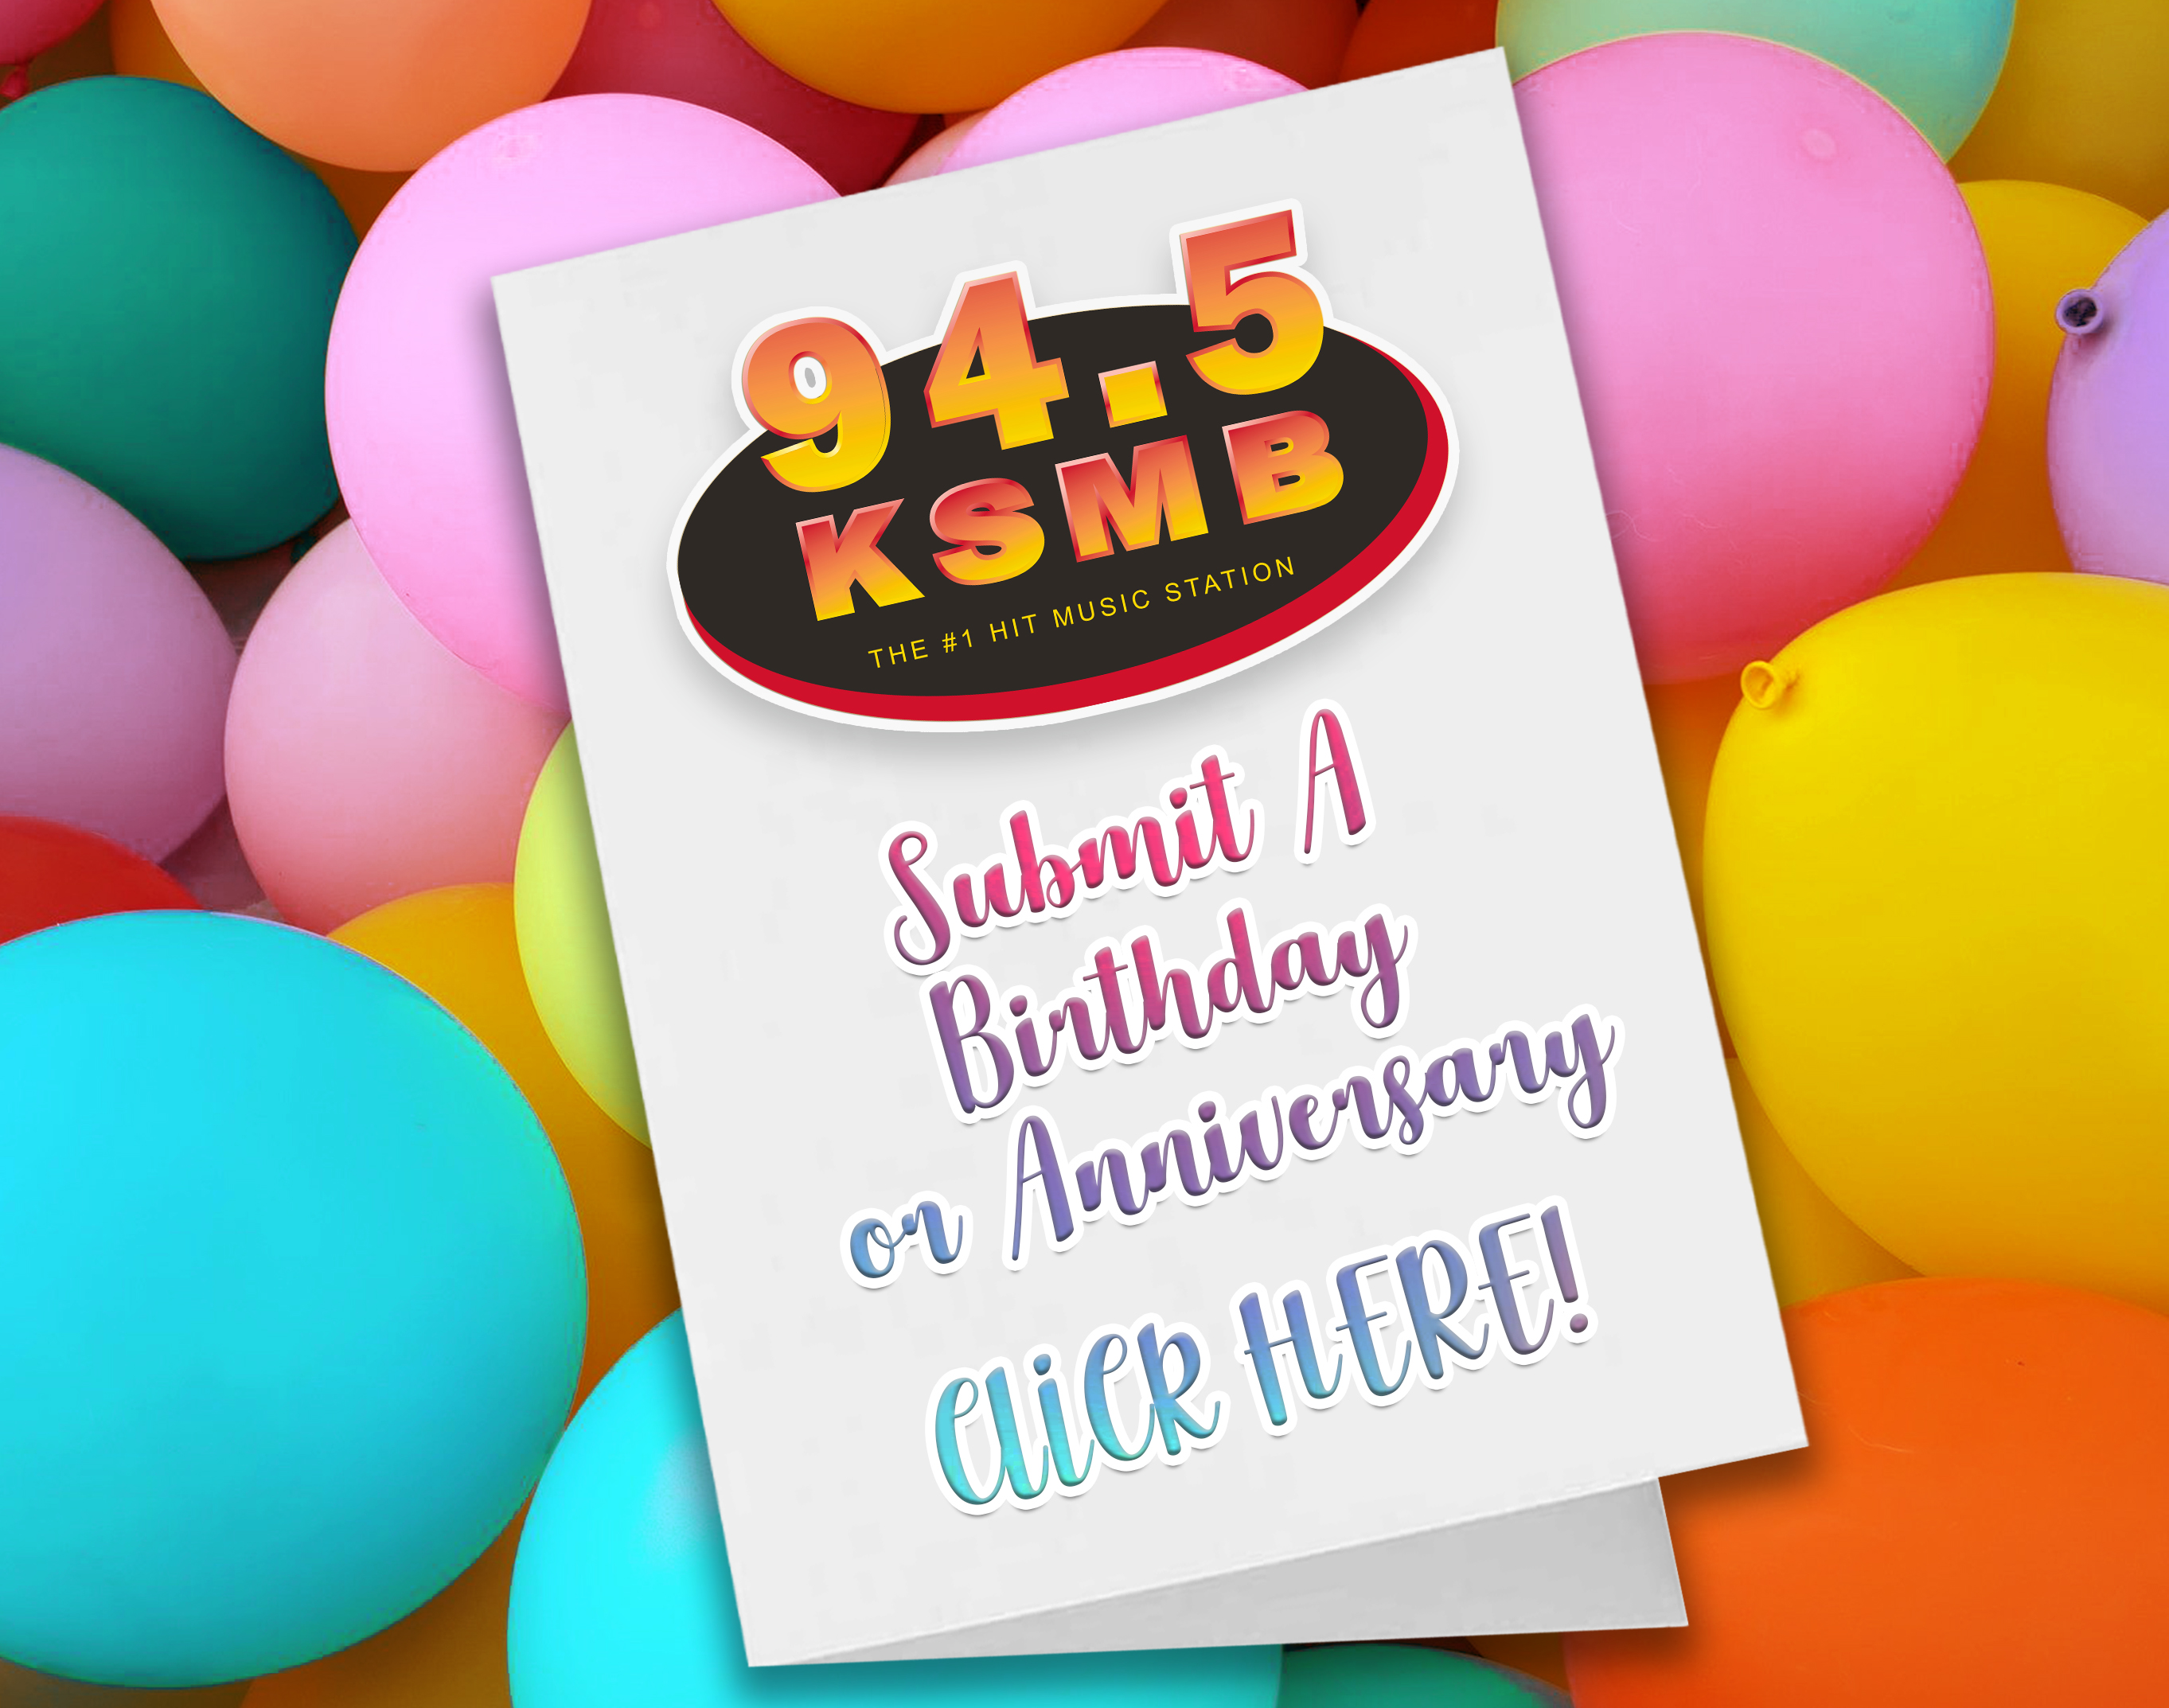 CLICK TO SUBMIT YOUR BIRTHDAY!